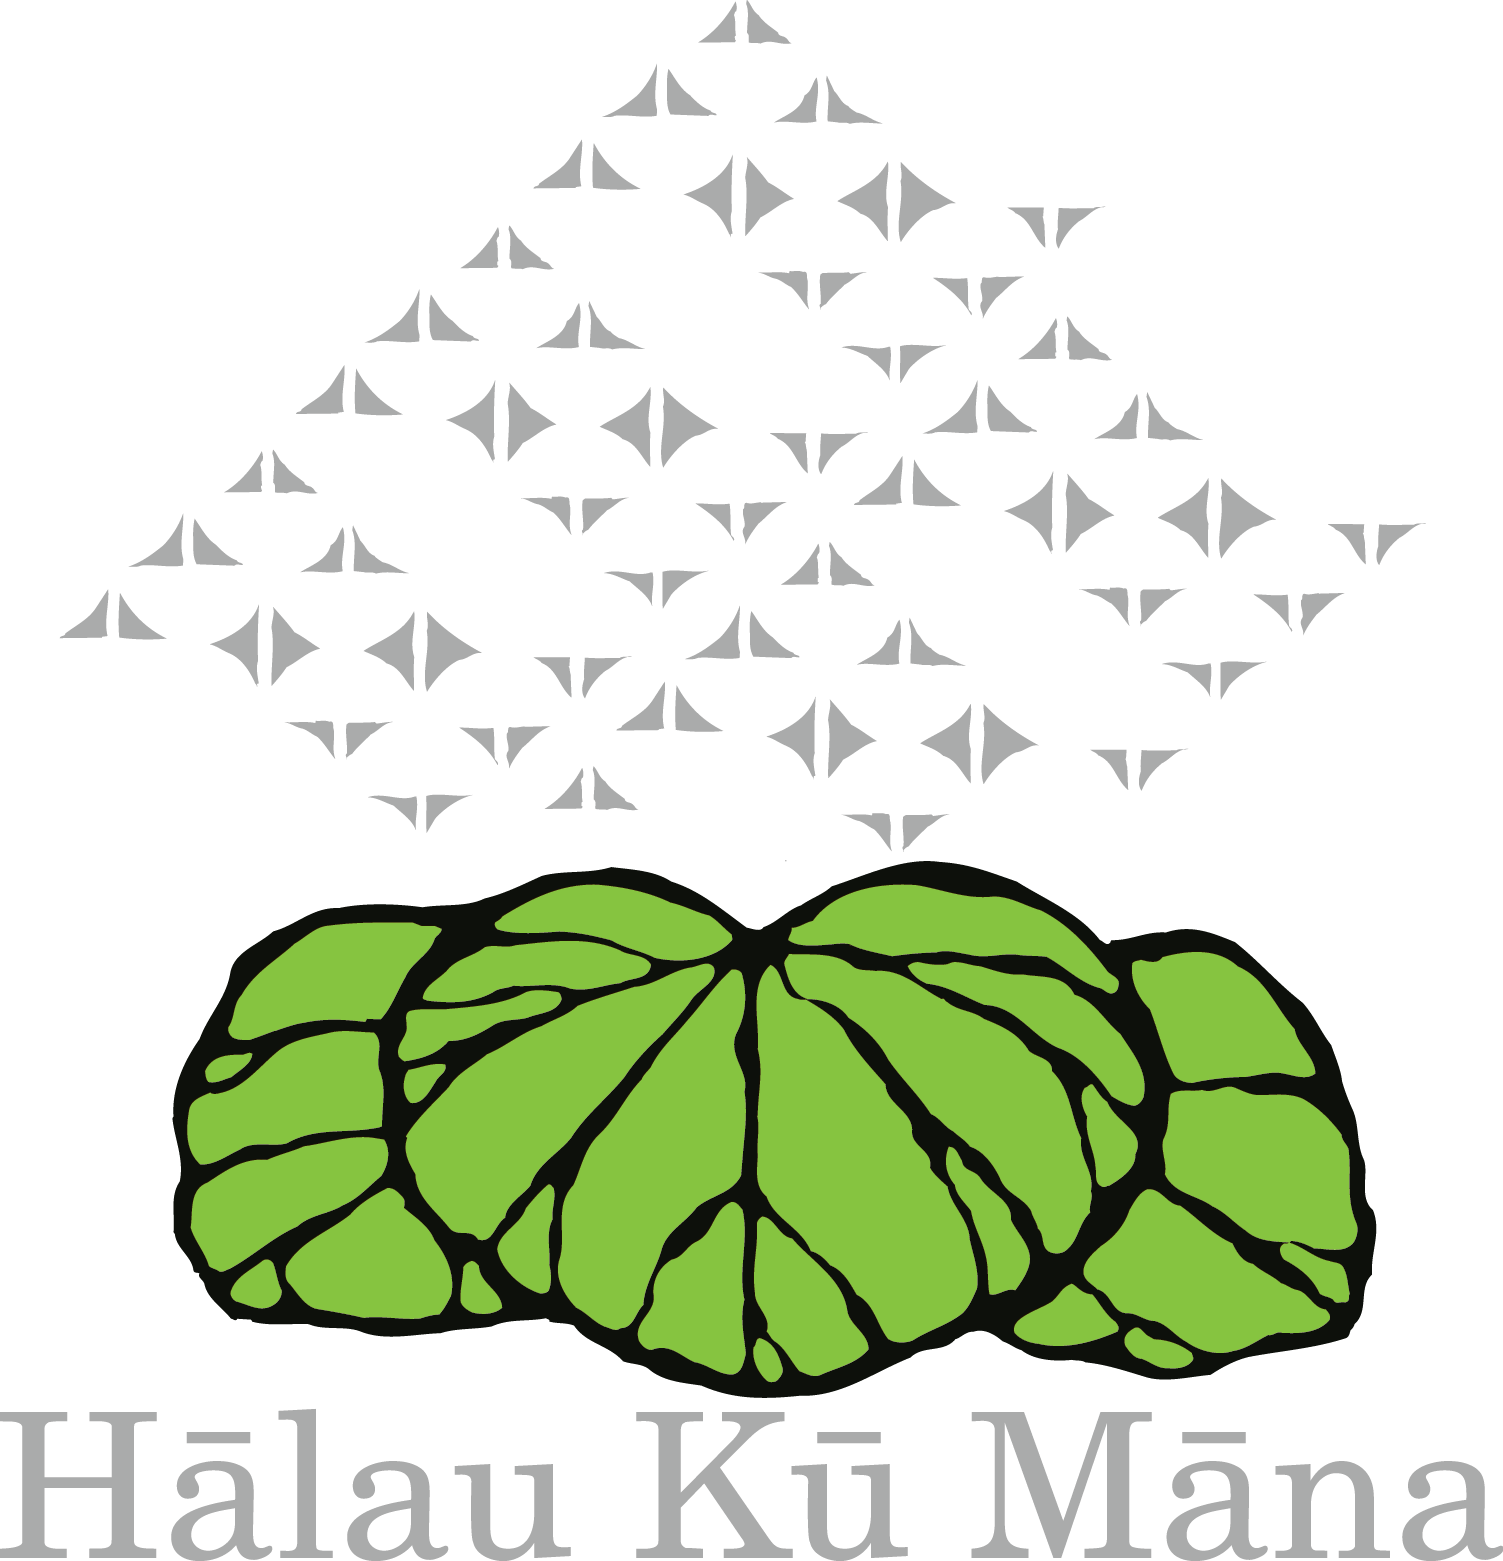 ORDER NOW  - Halau Ku ManaCURRENT ORDERING PERIODNovember 29th - December 5thPICK UP:All orders placed during this current ordering period will be delivered to HKM Office and available to pick up on Friday, December 15th.